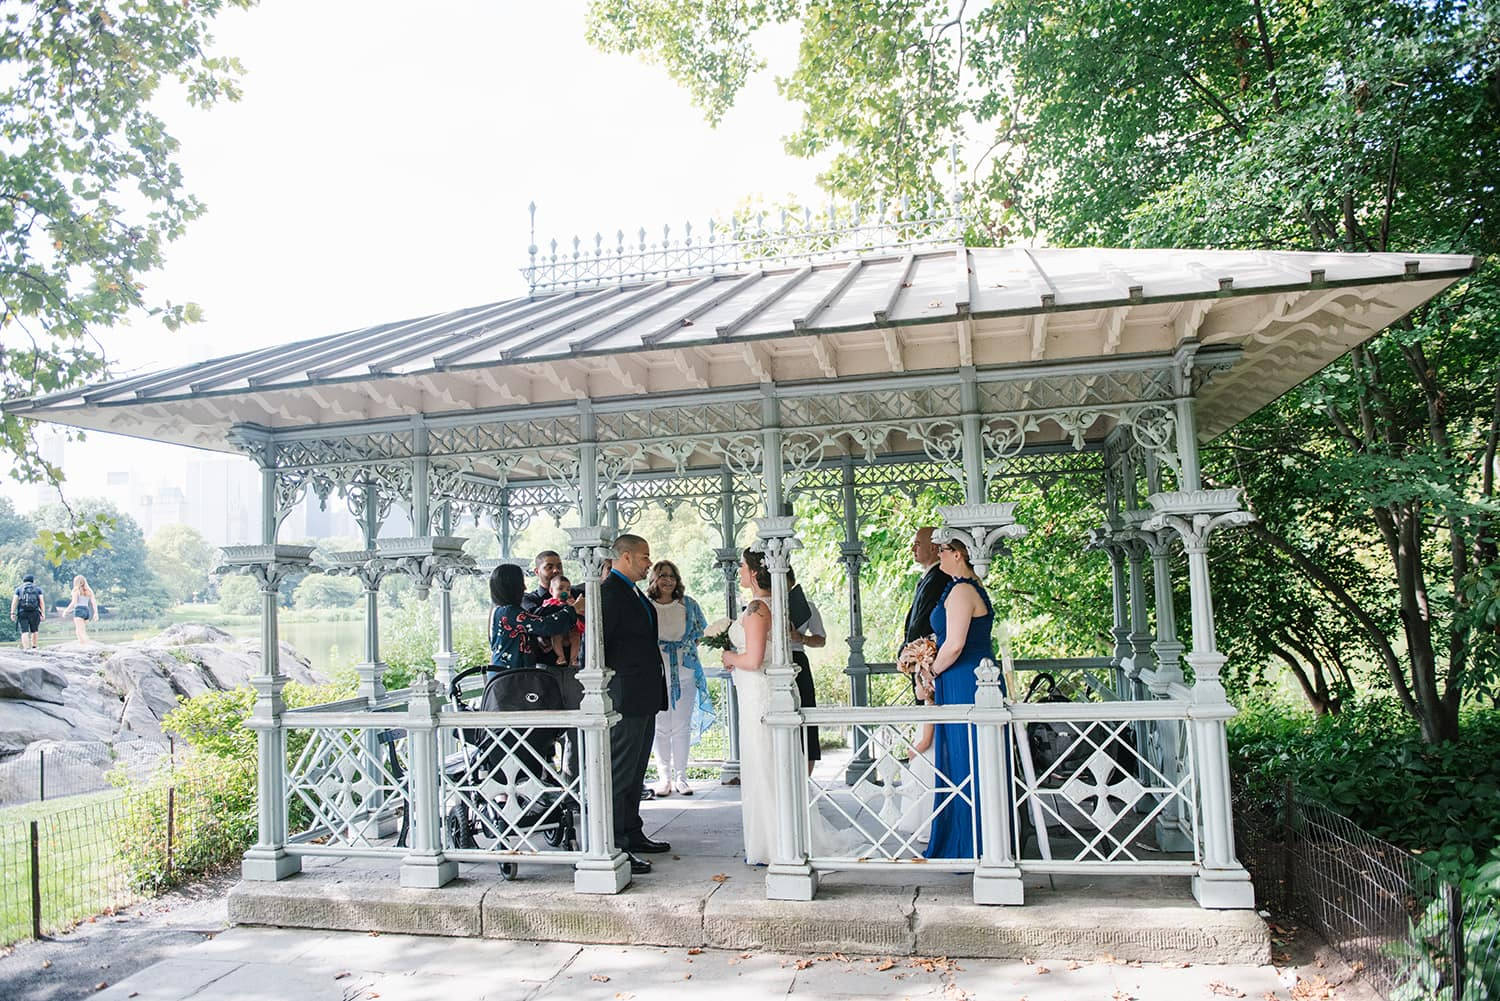 Places to Elope in NYC: Ladies Pavilion wedding in Central Park, NYC